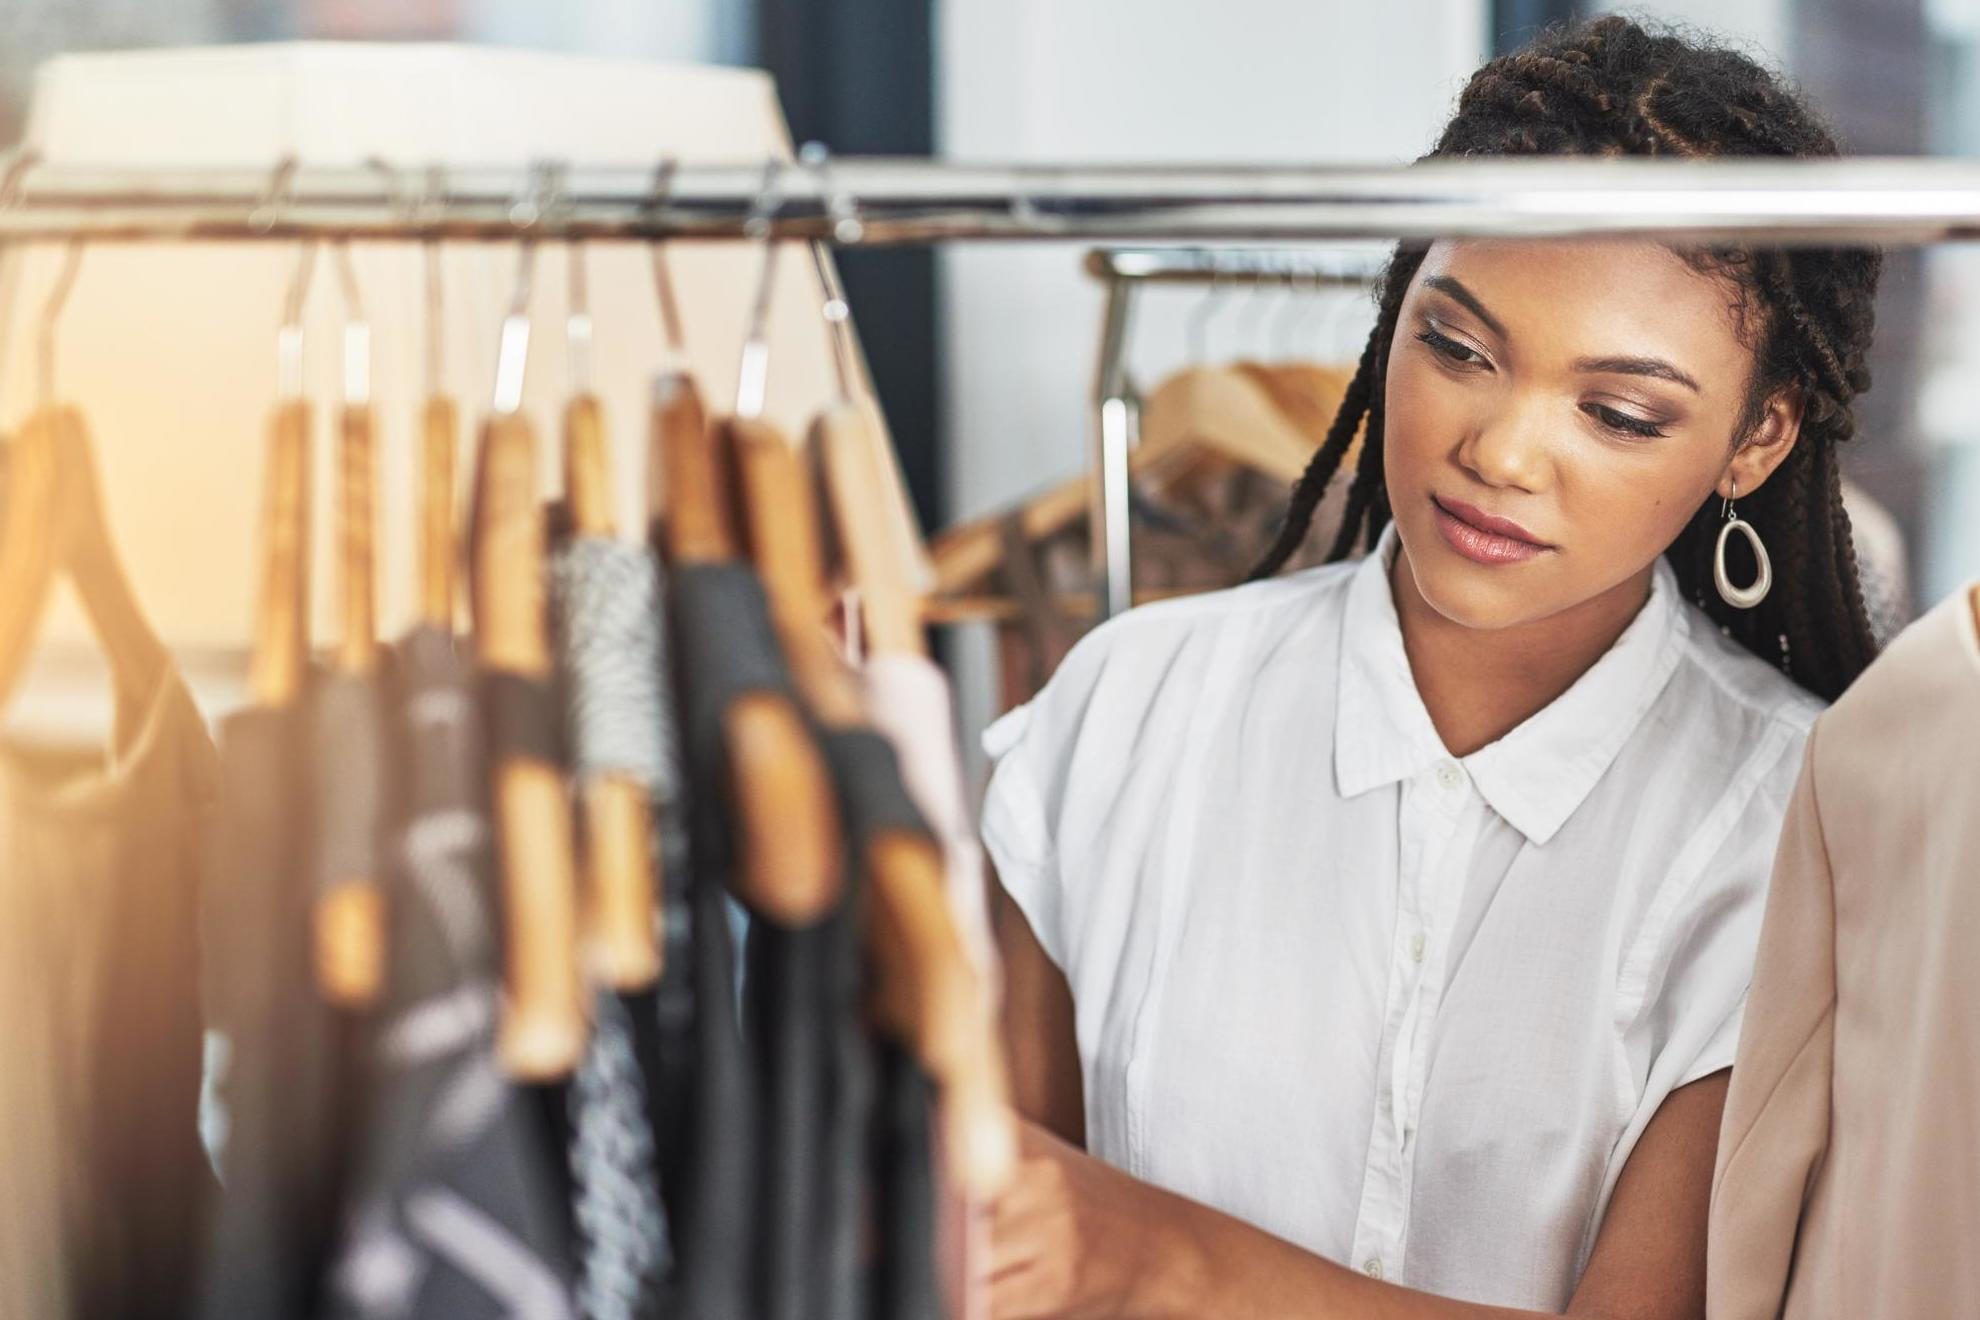 Update your style at 3 new Chicago clothing shops